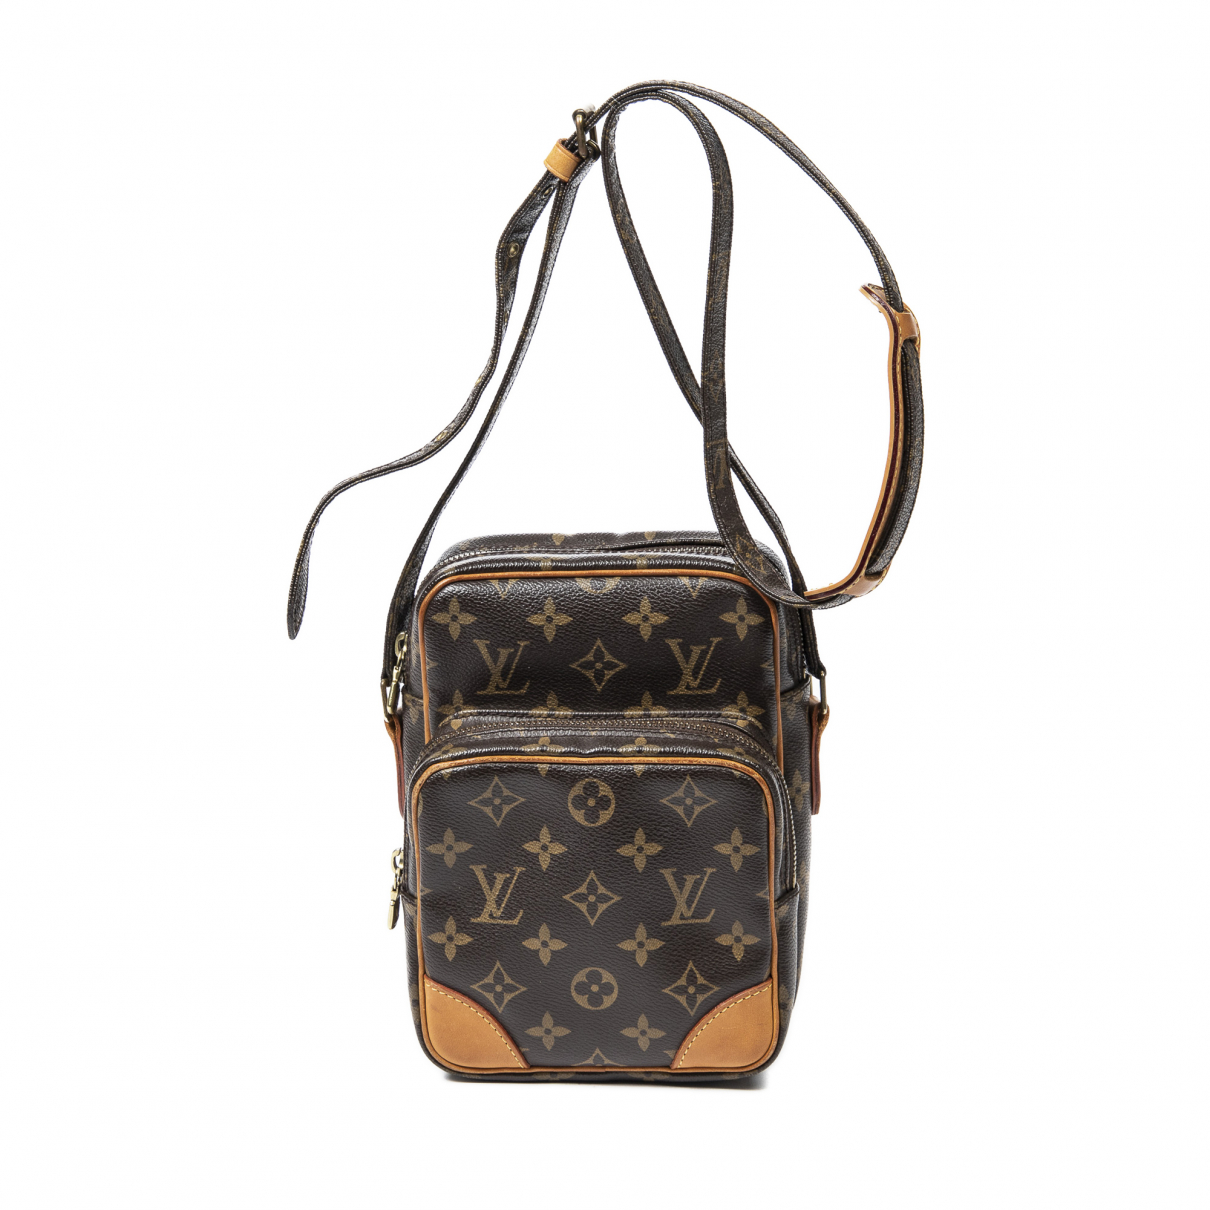 Louis Vuitton - Sac a main   pour femme en coton - marron